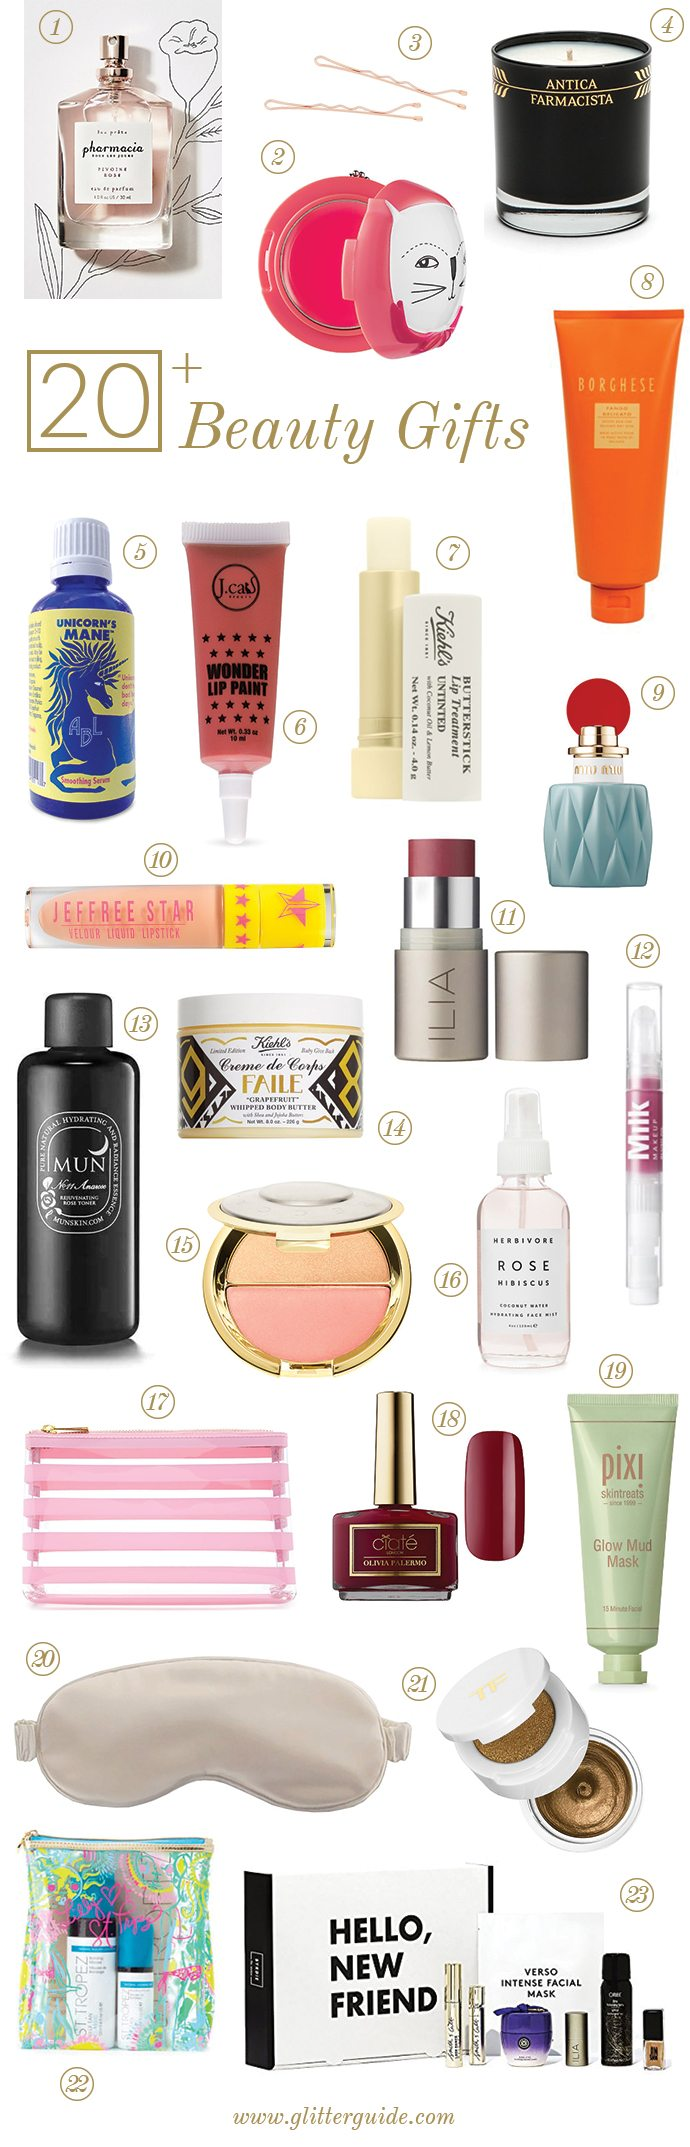 20+ Beauty Gifts To Snag ASAP